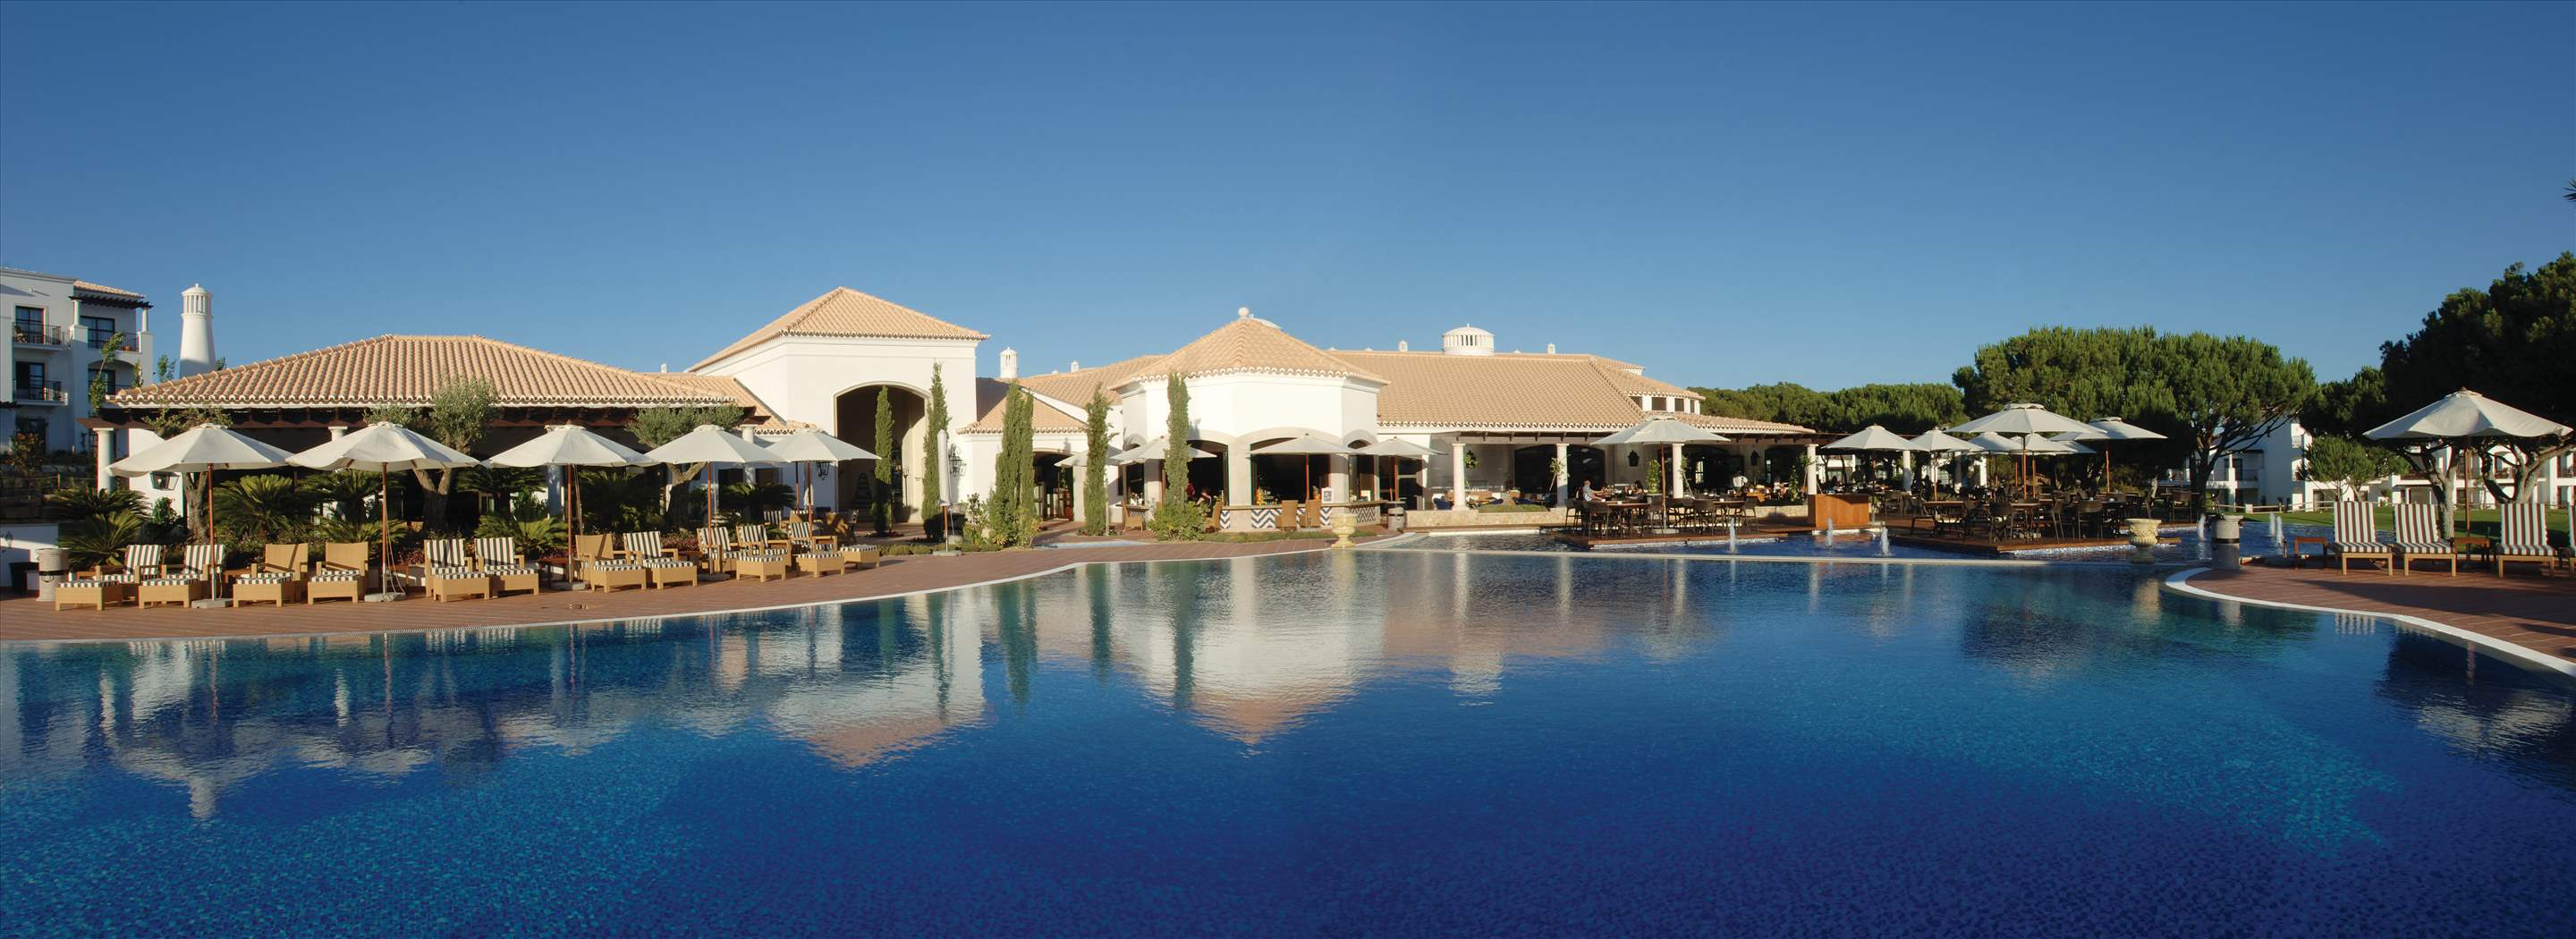 Pine Cliffs Residence, Penthouse 3 bed luxury suite, 3 bedroom apartment in Pine Cliffs Resort, Algarve Photo #3